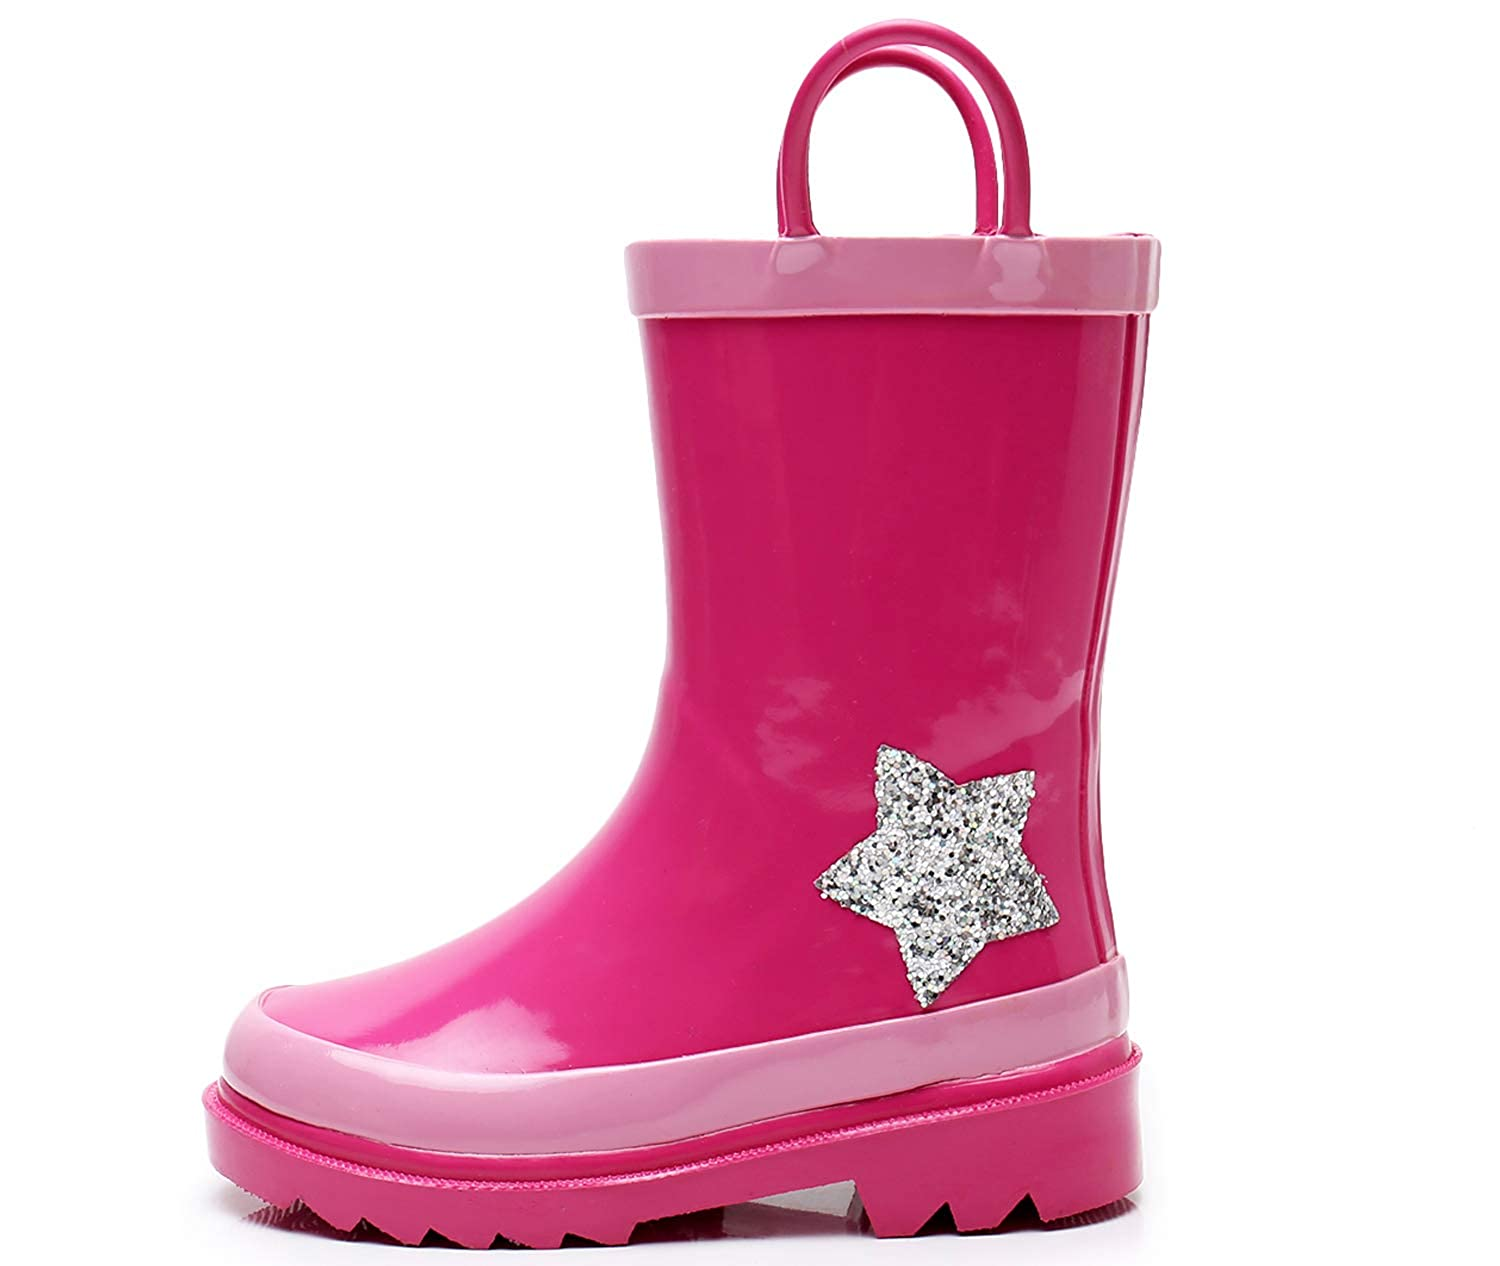 SOLARRAIN Toddler Girls Rubber Waterproof Pink Rain Boots for Kids Outdoor Non Slip Durable Rain Shoes with Easy On Handles